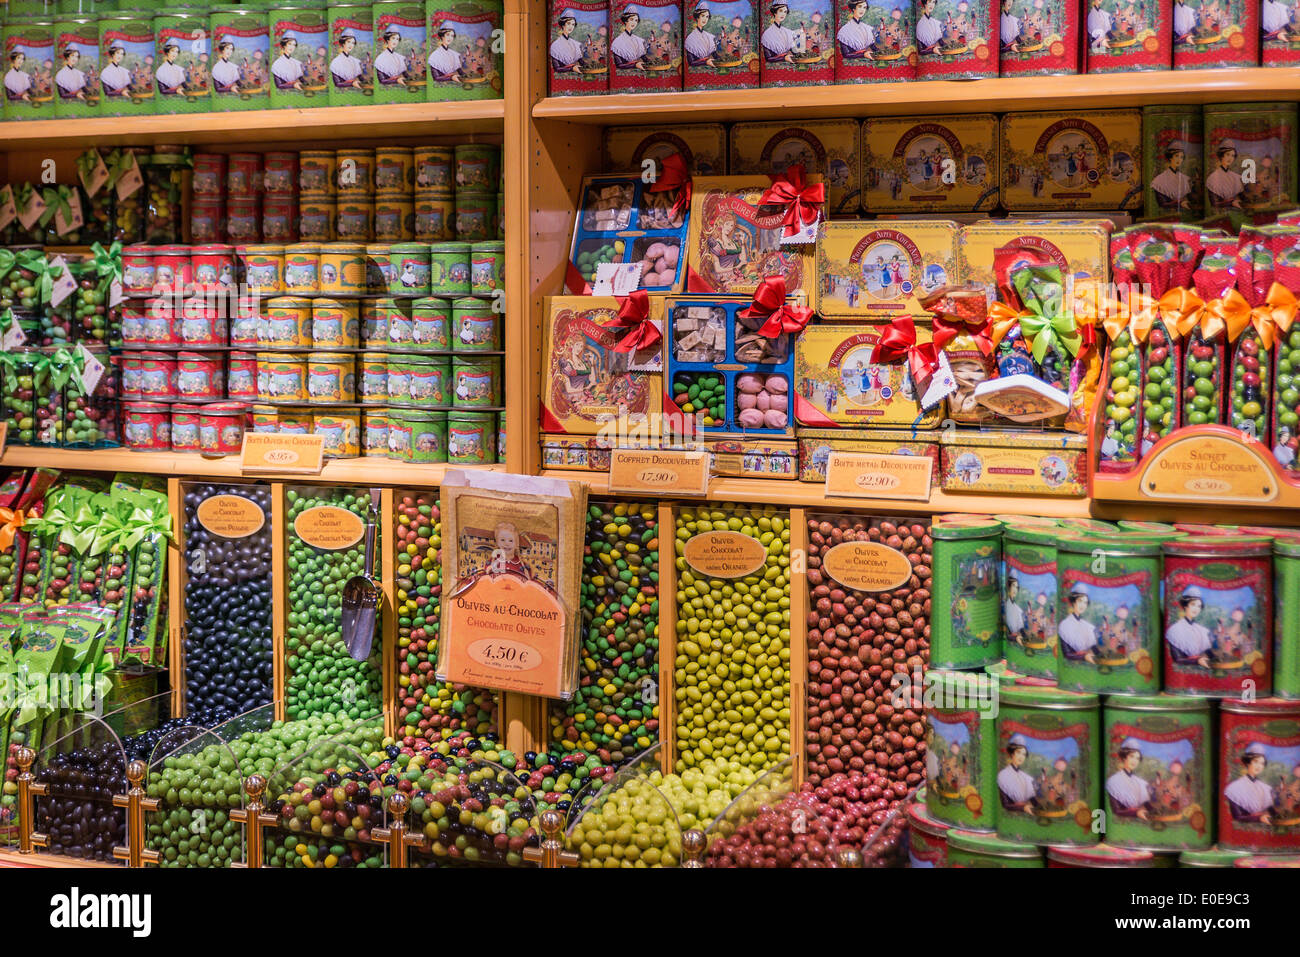 La Cure Gourmande, St Paul de Vence, Provence, France - Stock Image